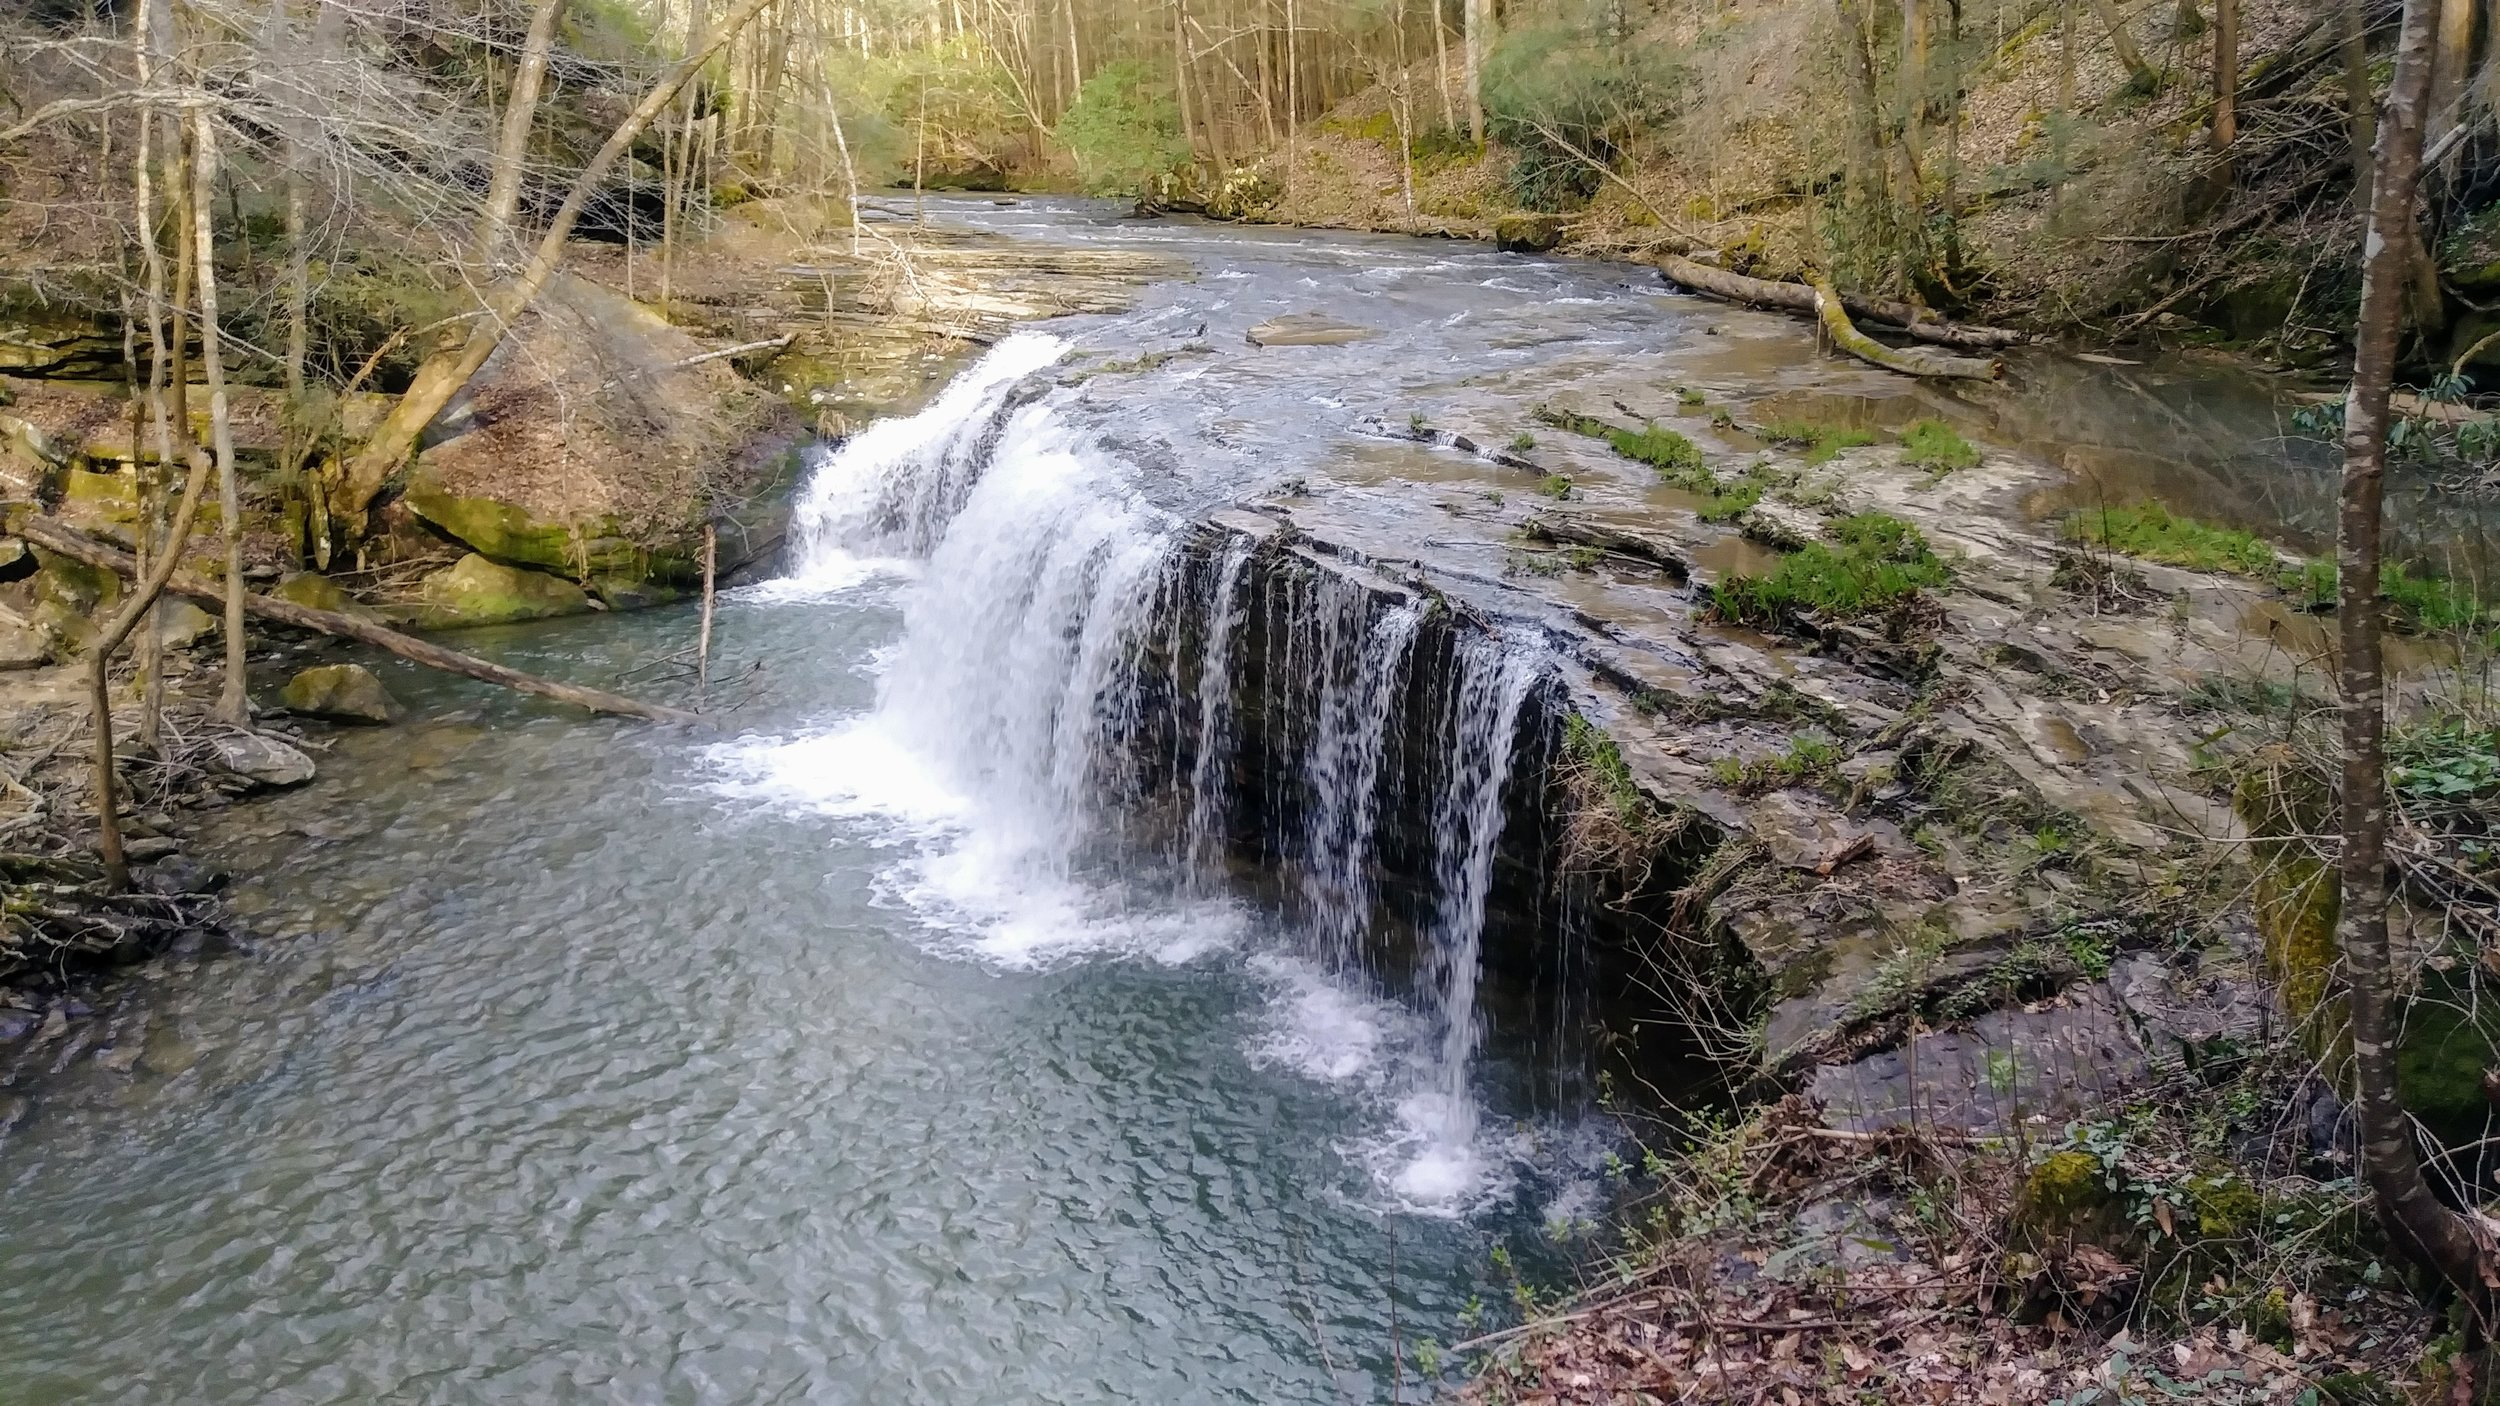 Princess Falls along Lick Creek Trail in Big South Fork National River and Recreation Area